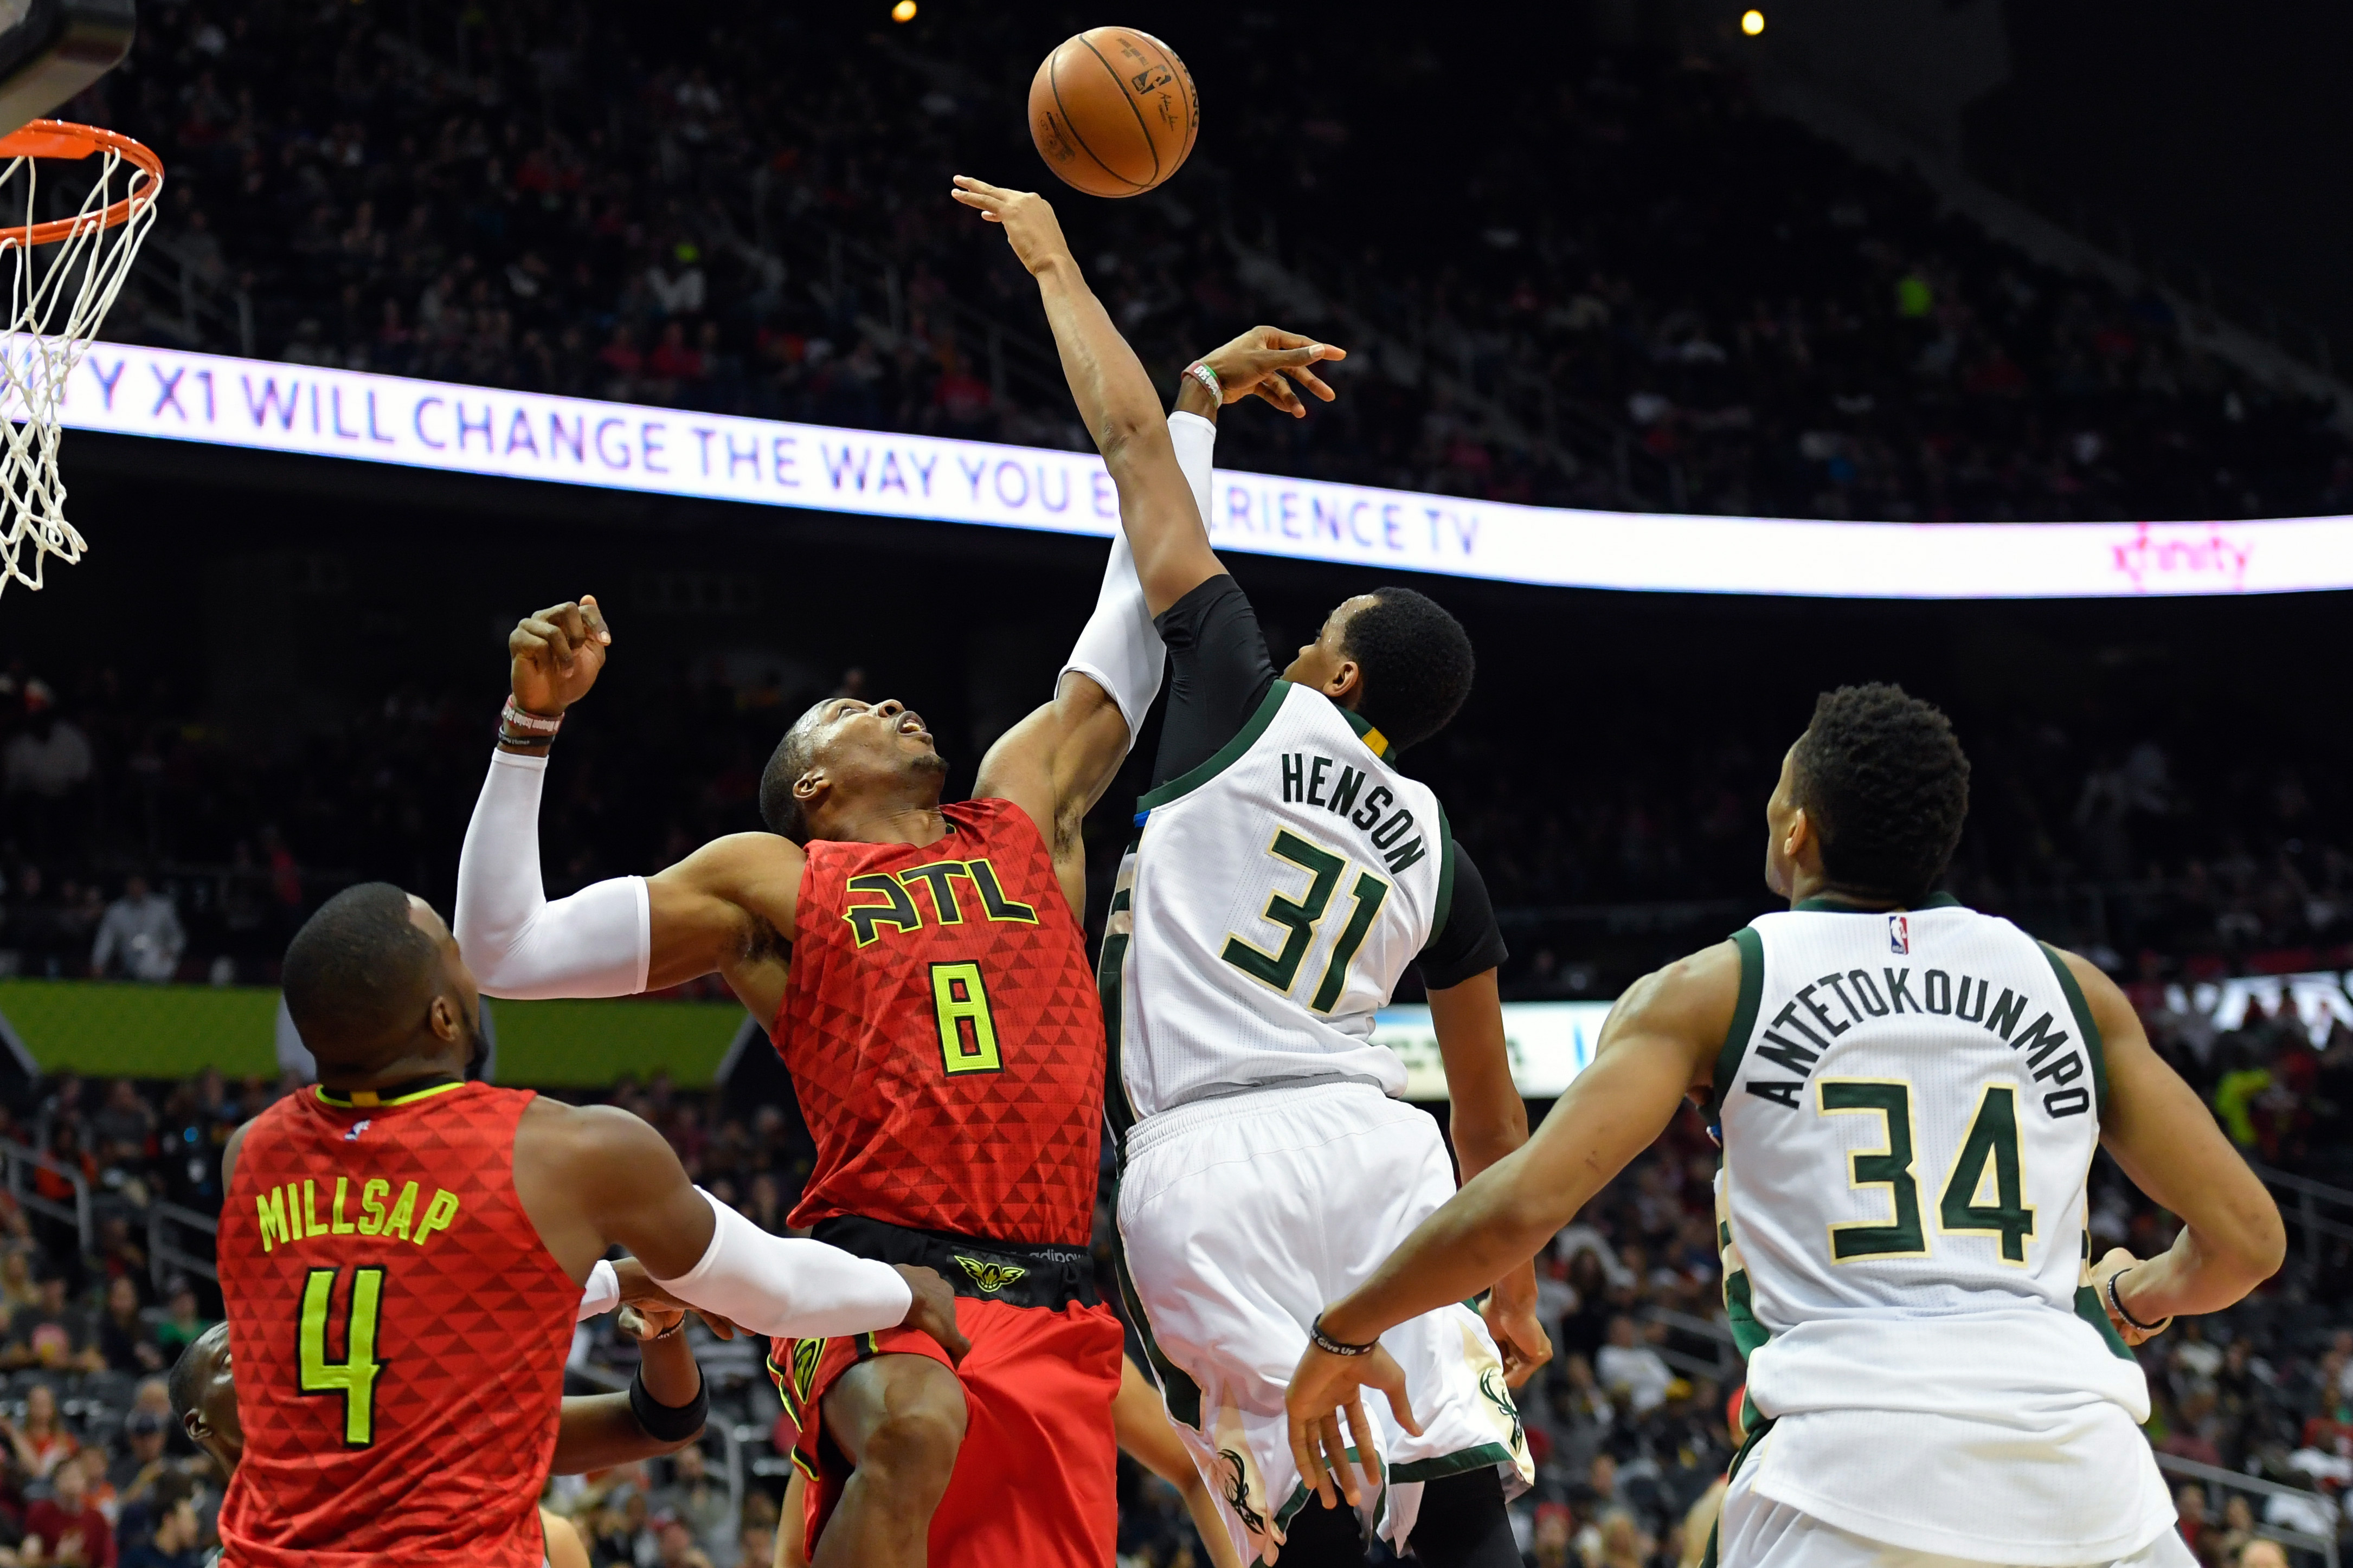 Jan 15, 2017; Atlanta, GA, USA; Atlanta Hawks center Dwight Howard (8) and Milwaukee Bucks center John Henson (31) fight for a rebound during the second half at Philips Arena. The Hawks defeated the Bucks 111-98.Mandatory Credit: Dale Zanine-USA TODAY Sports